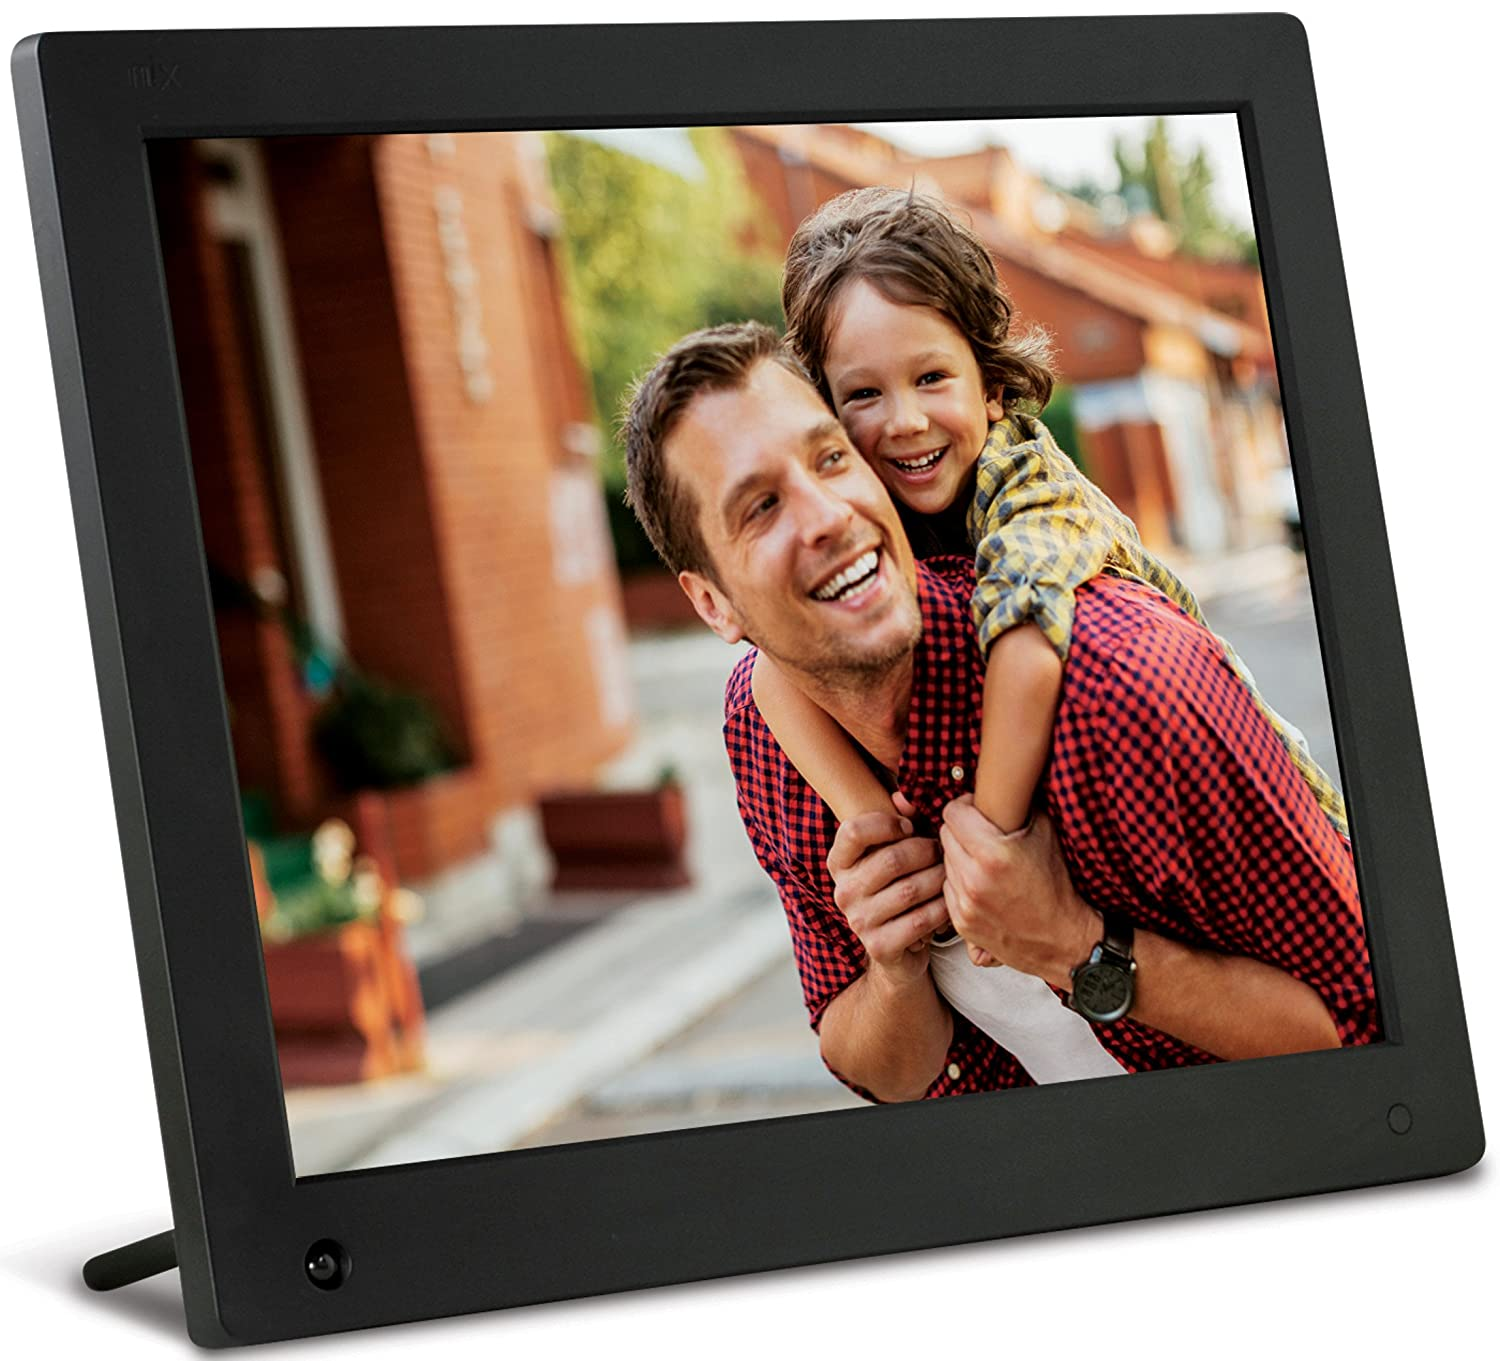 Amazon.com : NIX 12 inch Hi-Res Digital Photo Frame with Motion ...